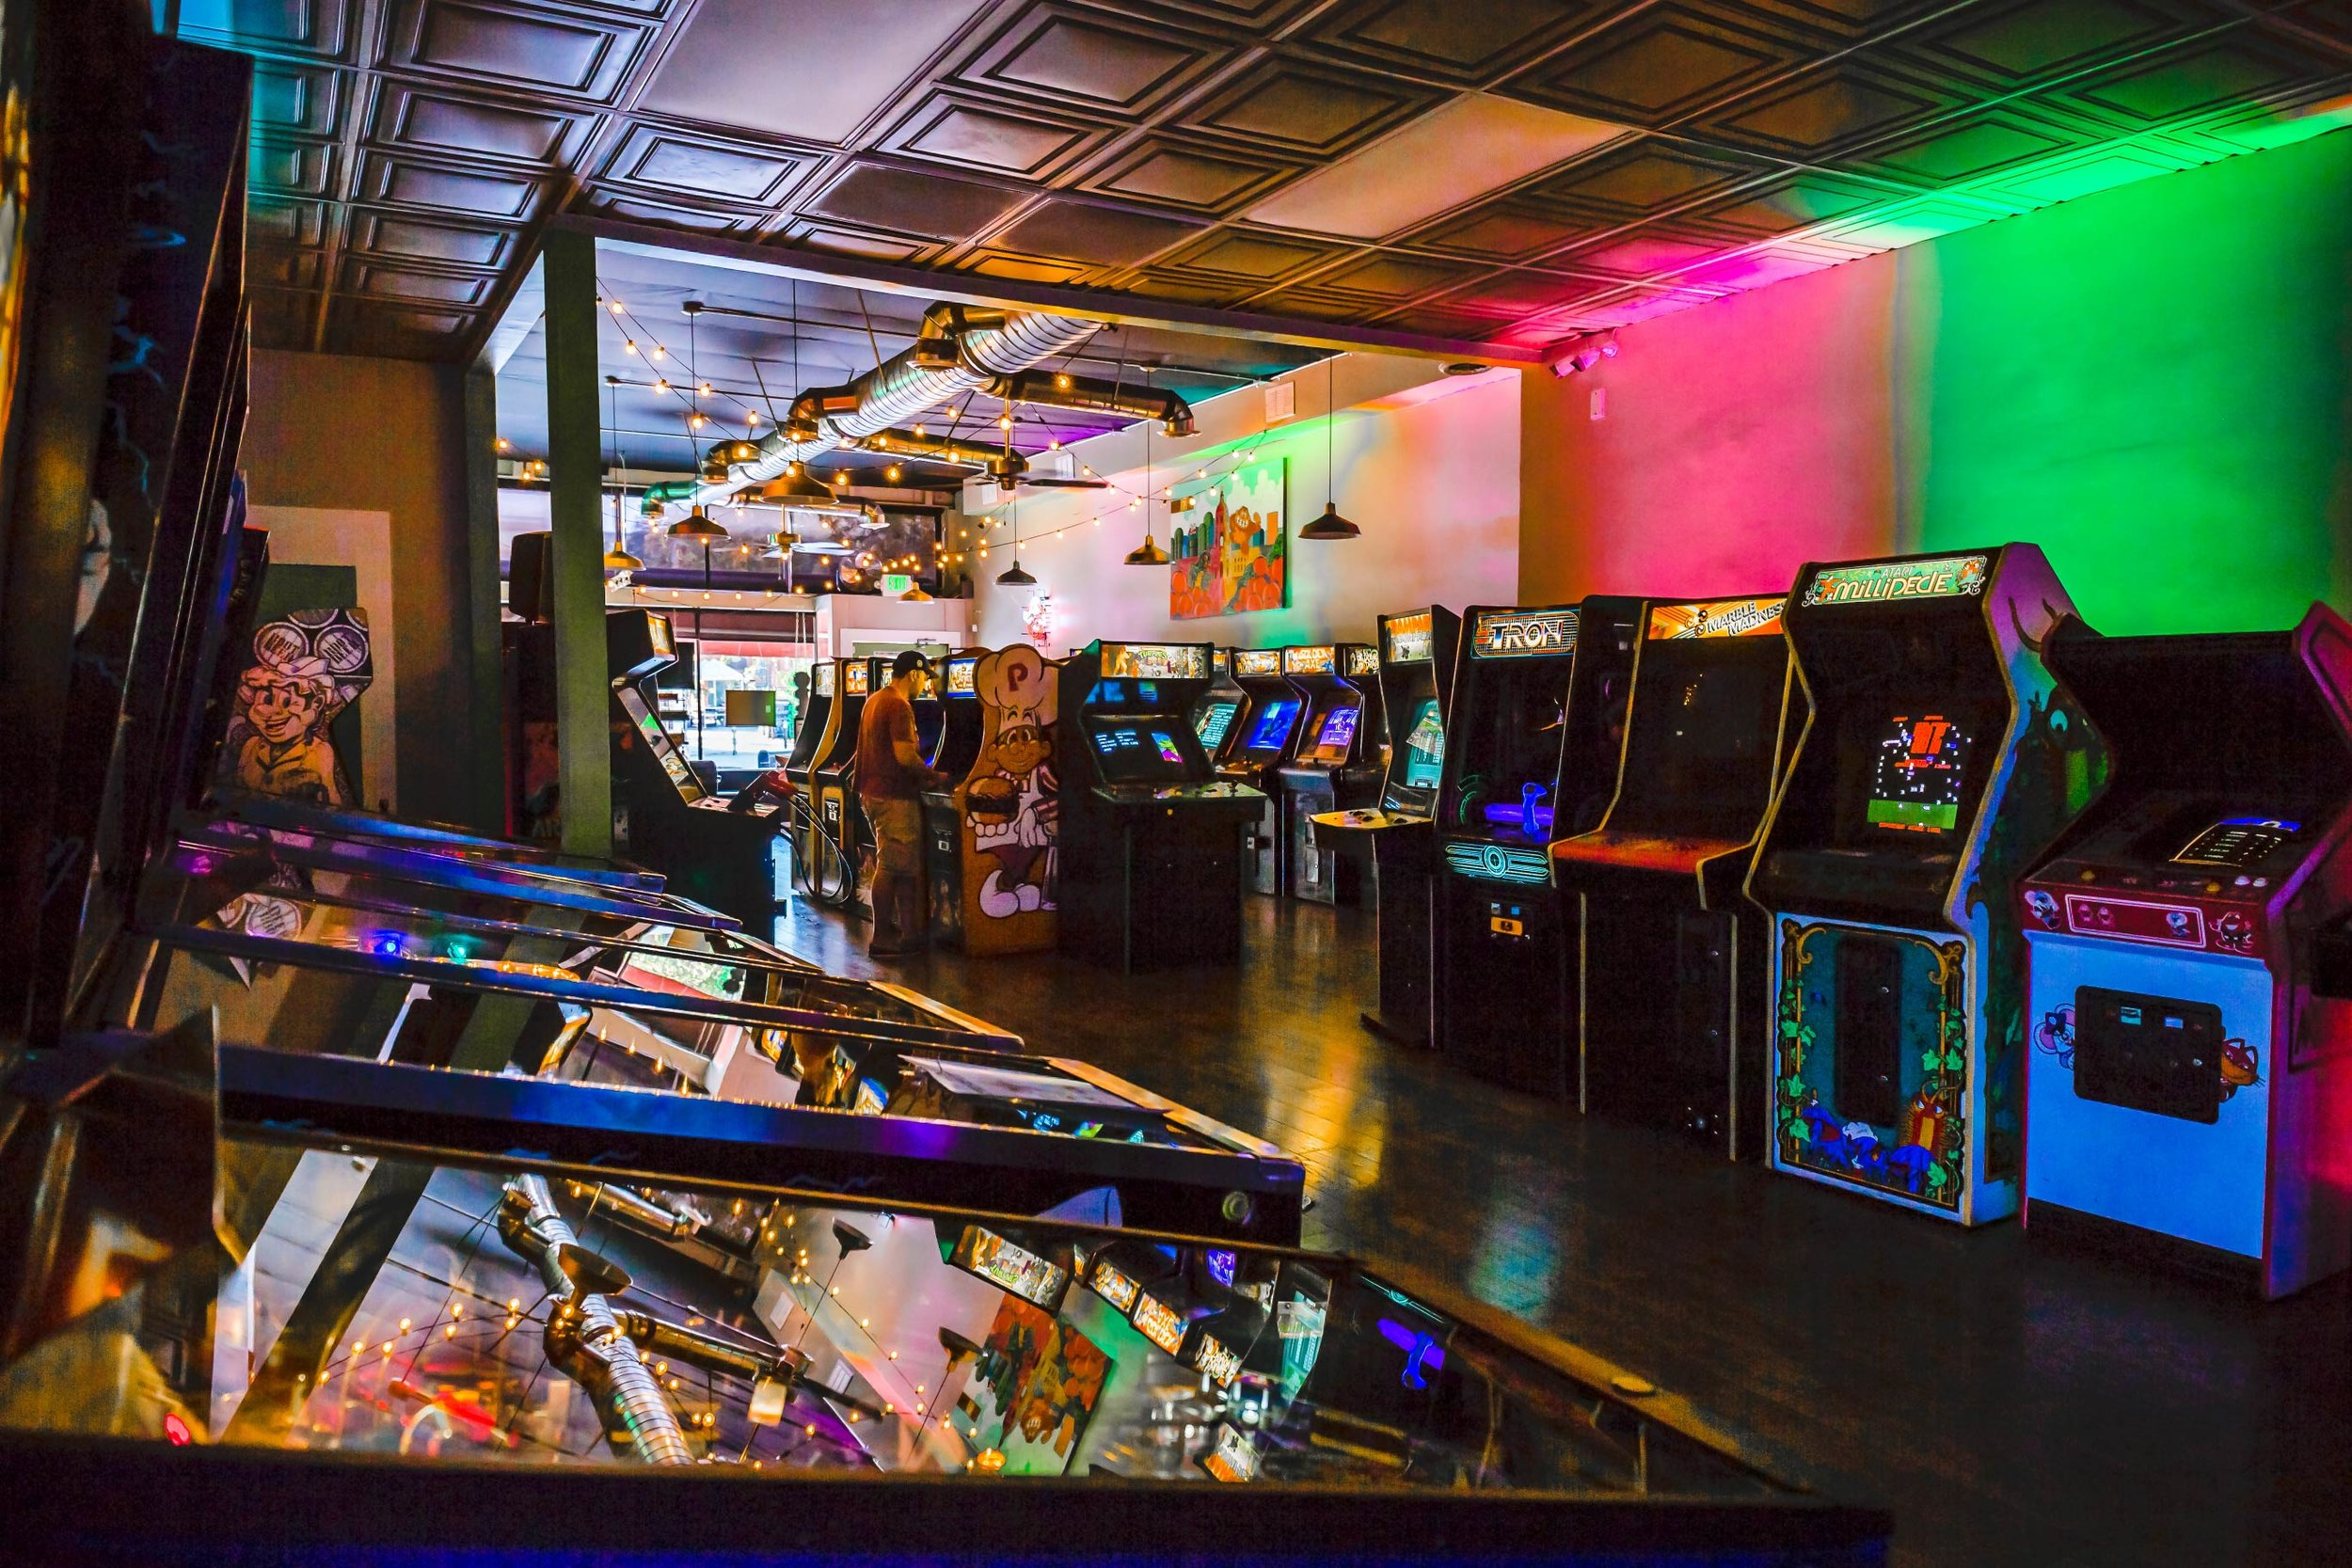 arcade with neon lights, games